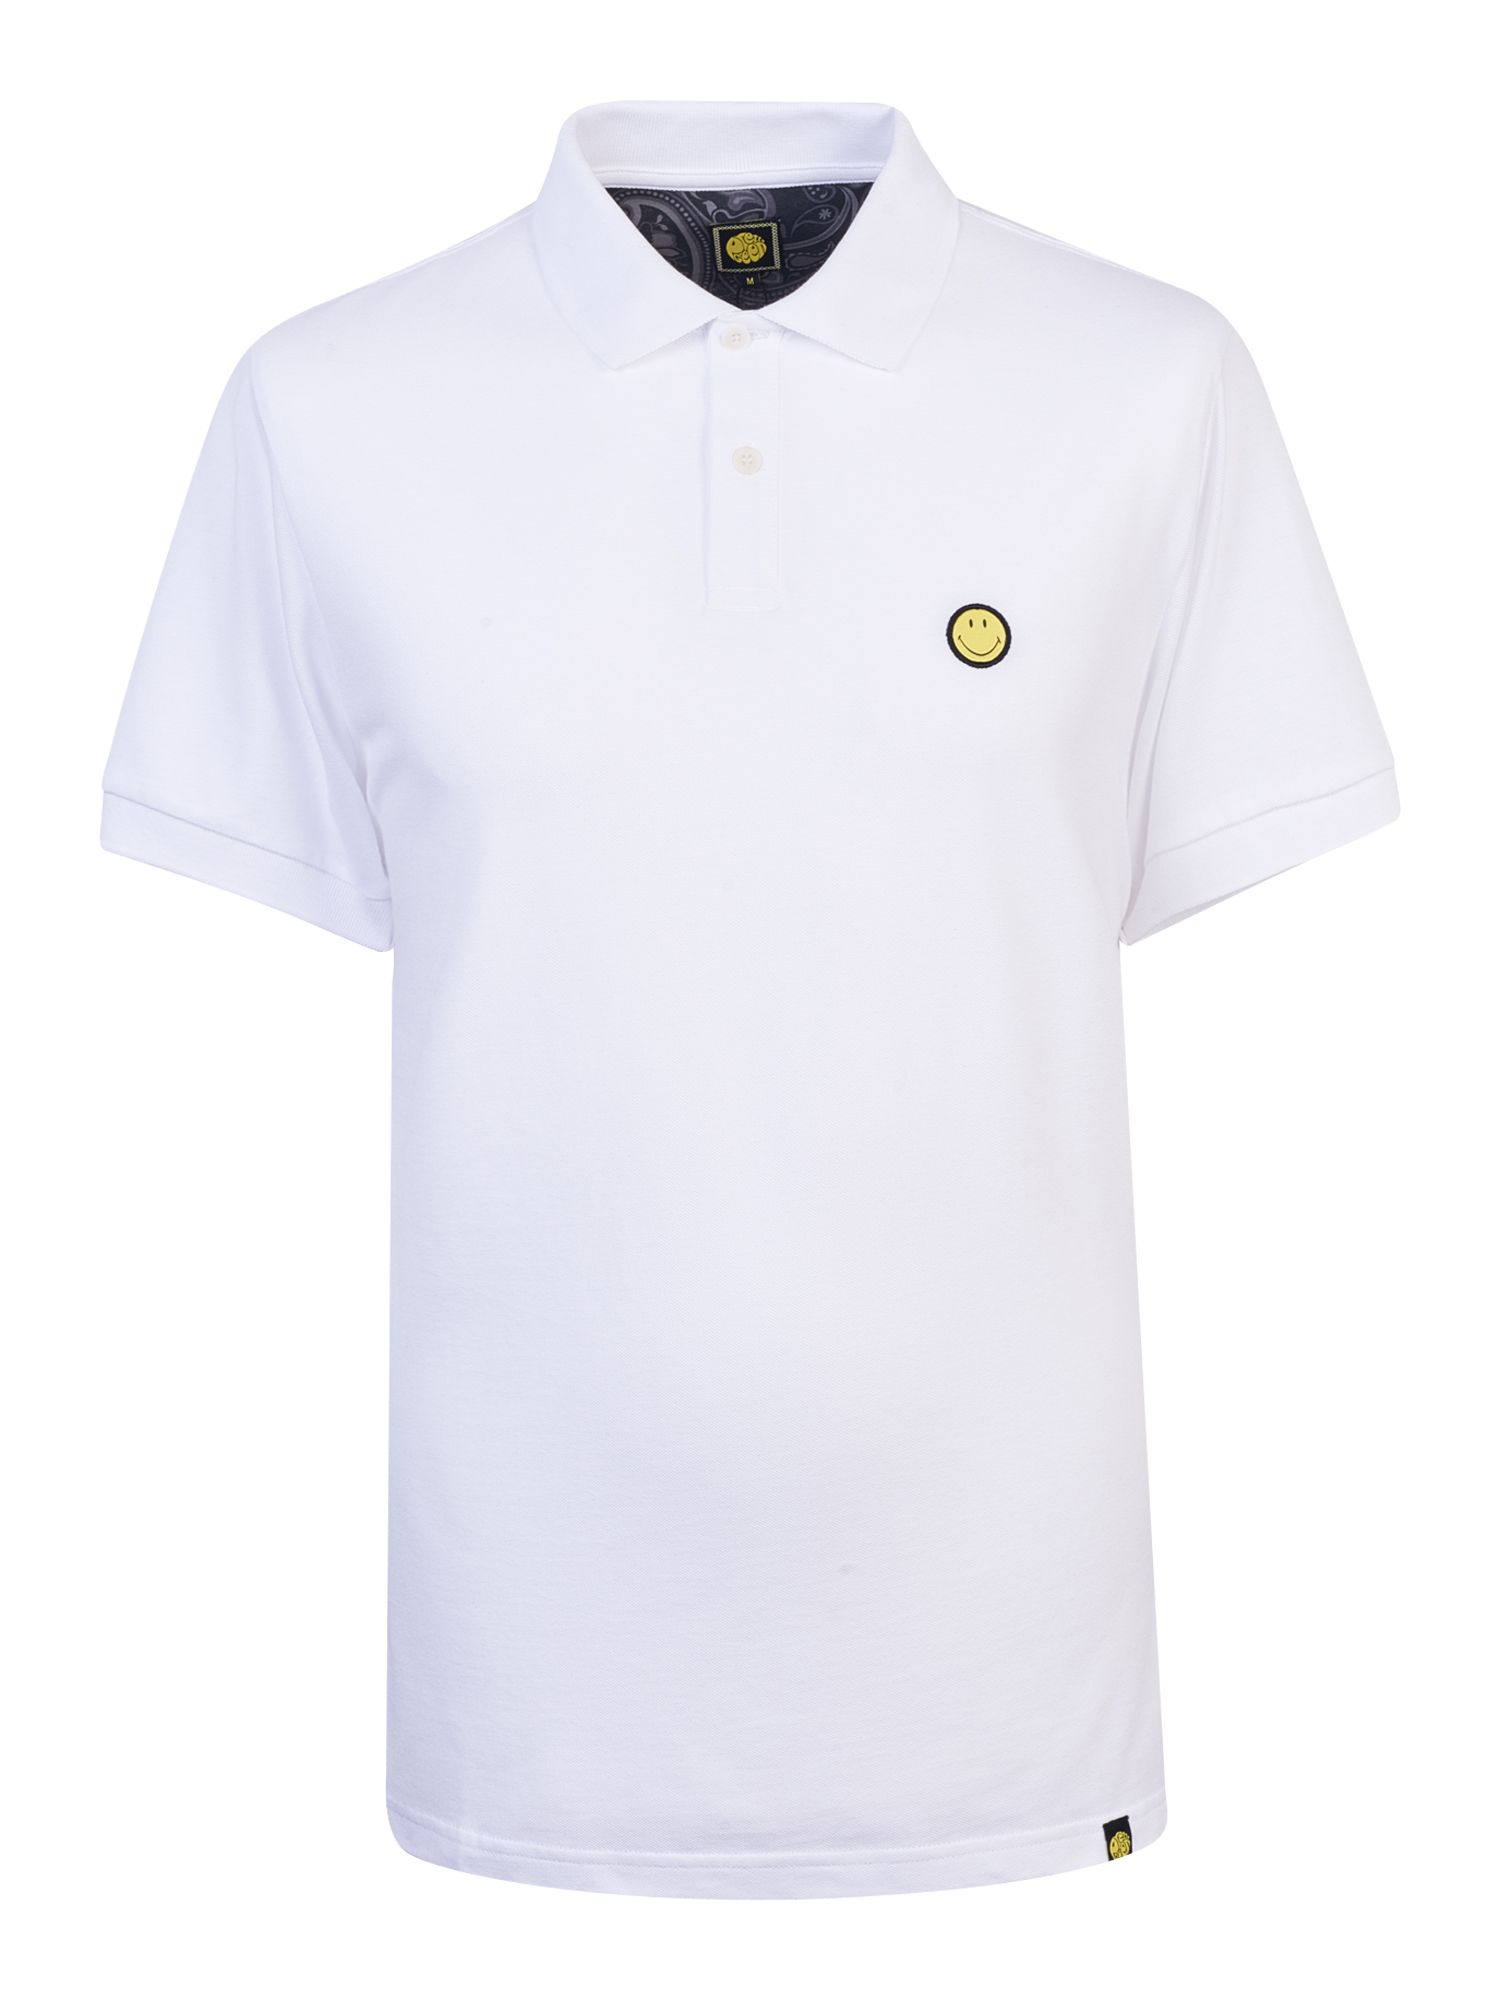 Men's Pretty Green Smiley Badge Polo Shirt, White